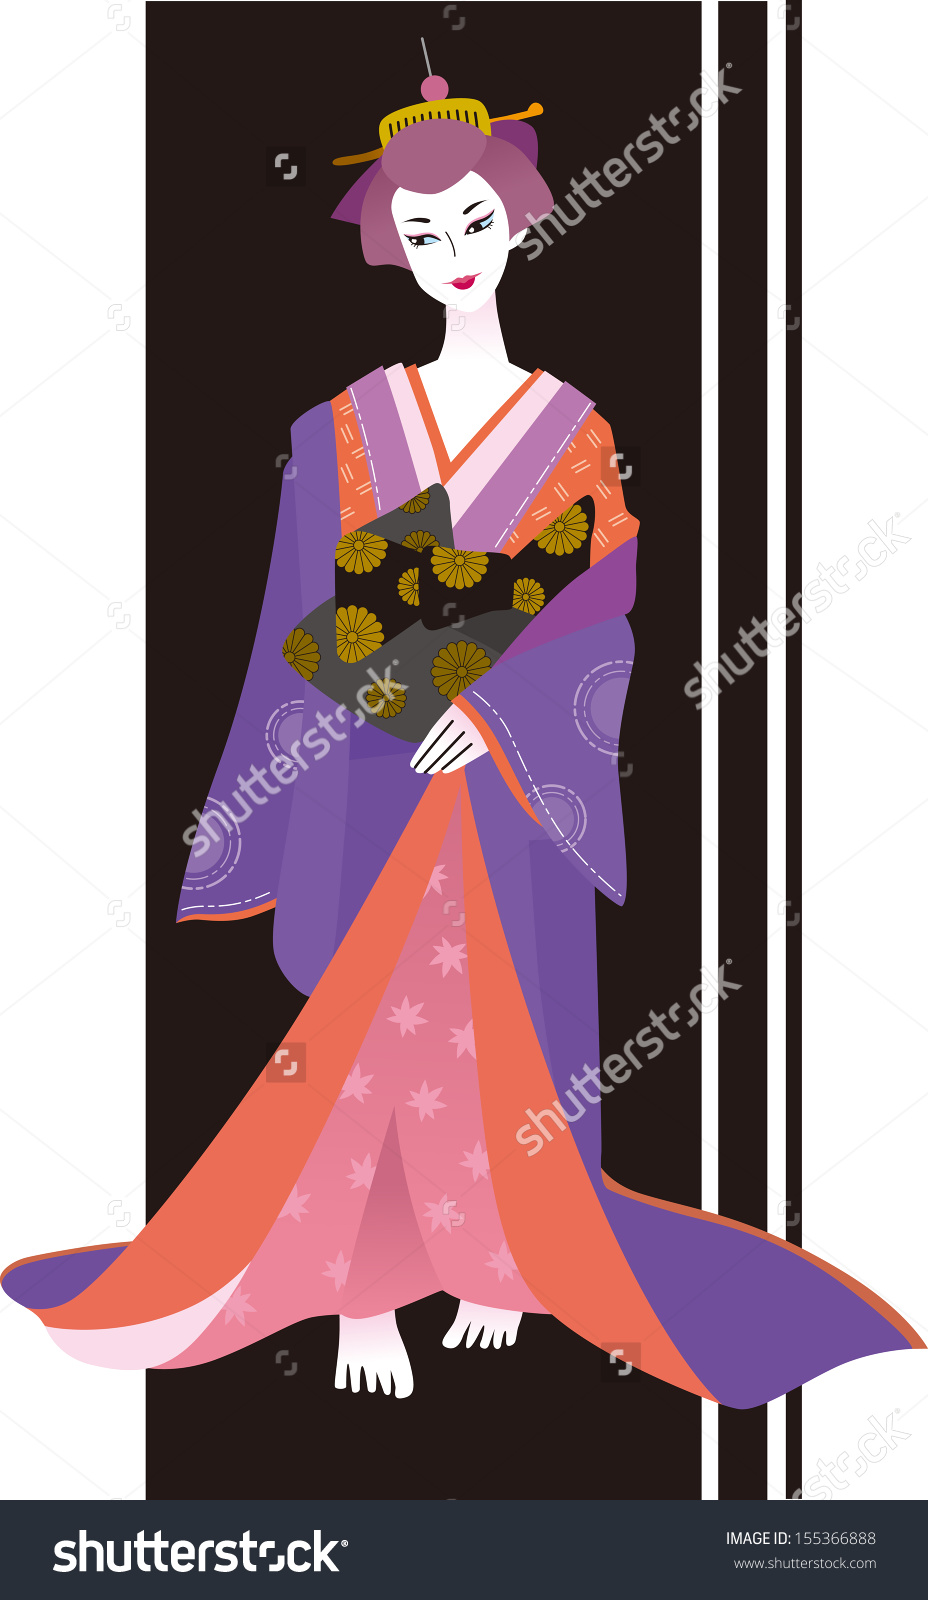 Courtesan clipart #1, Download drawings